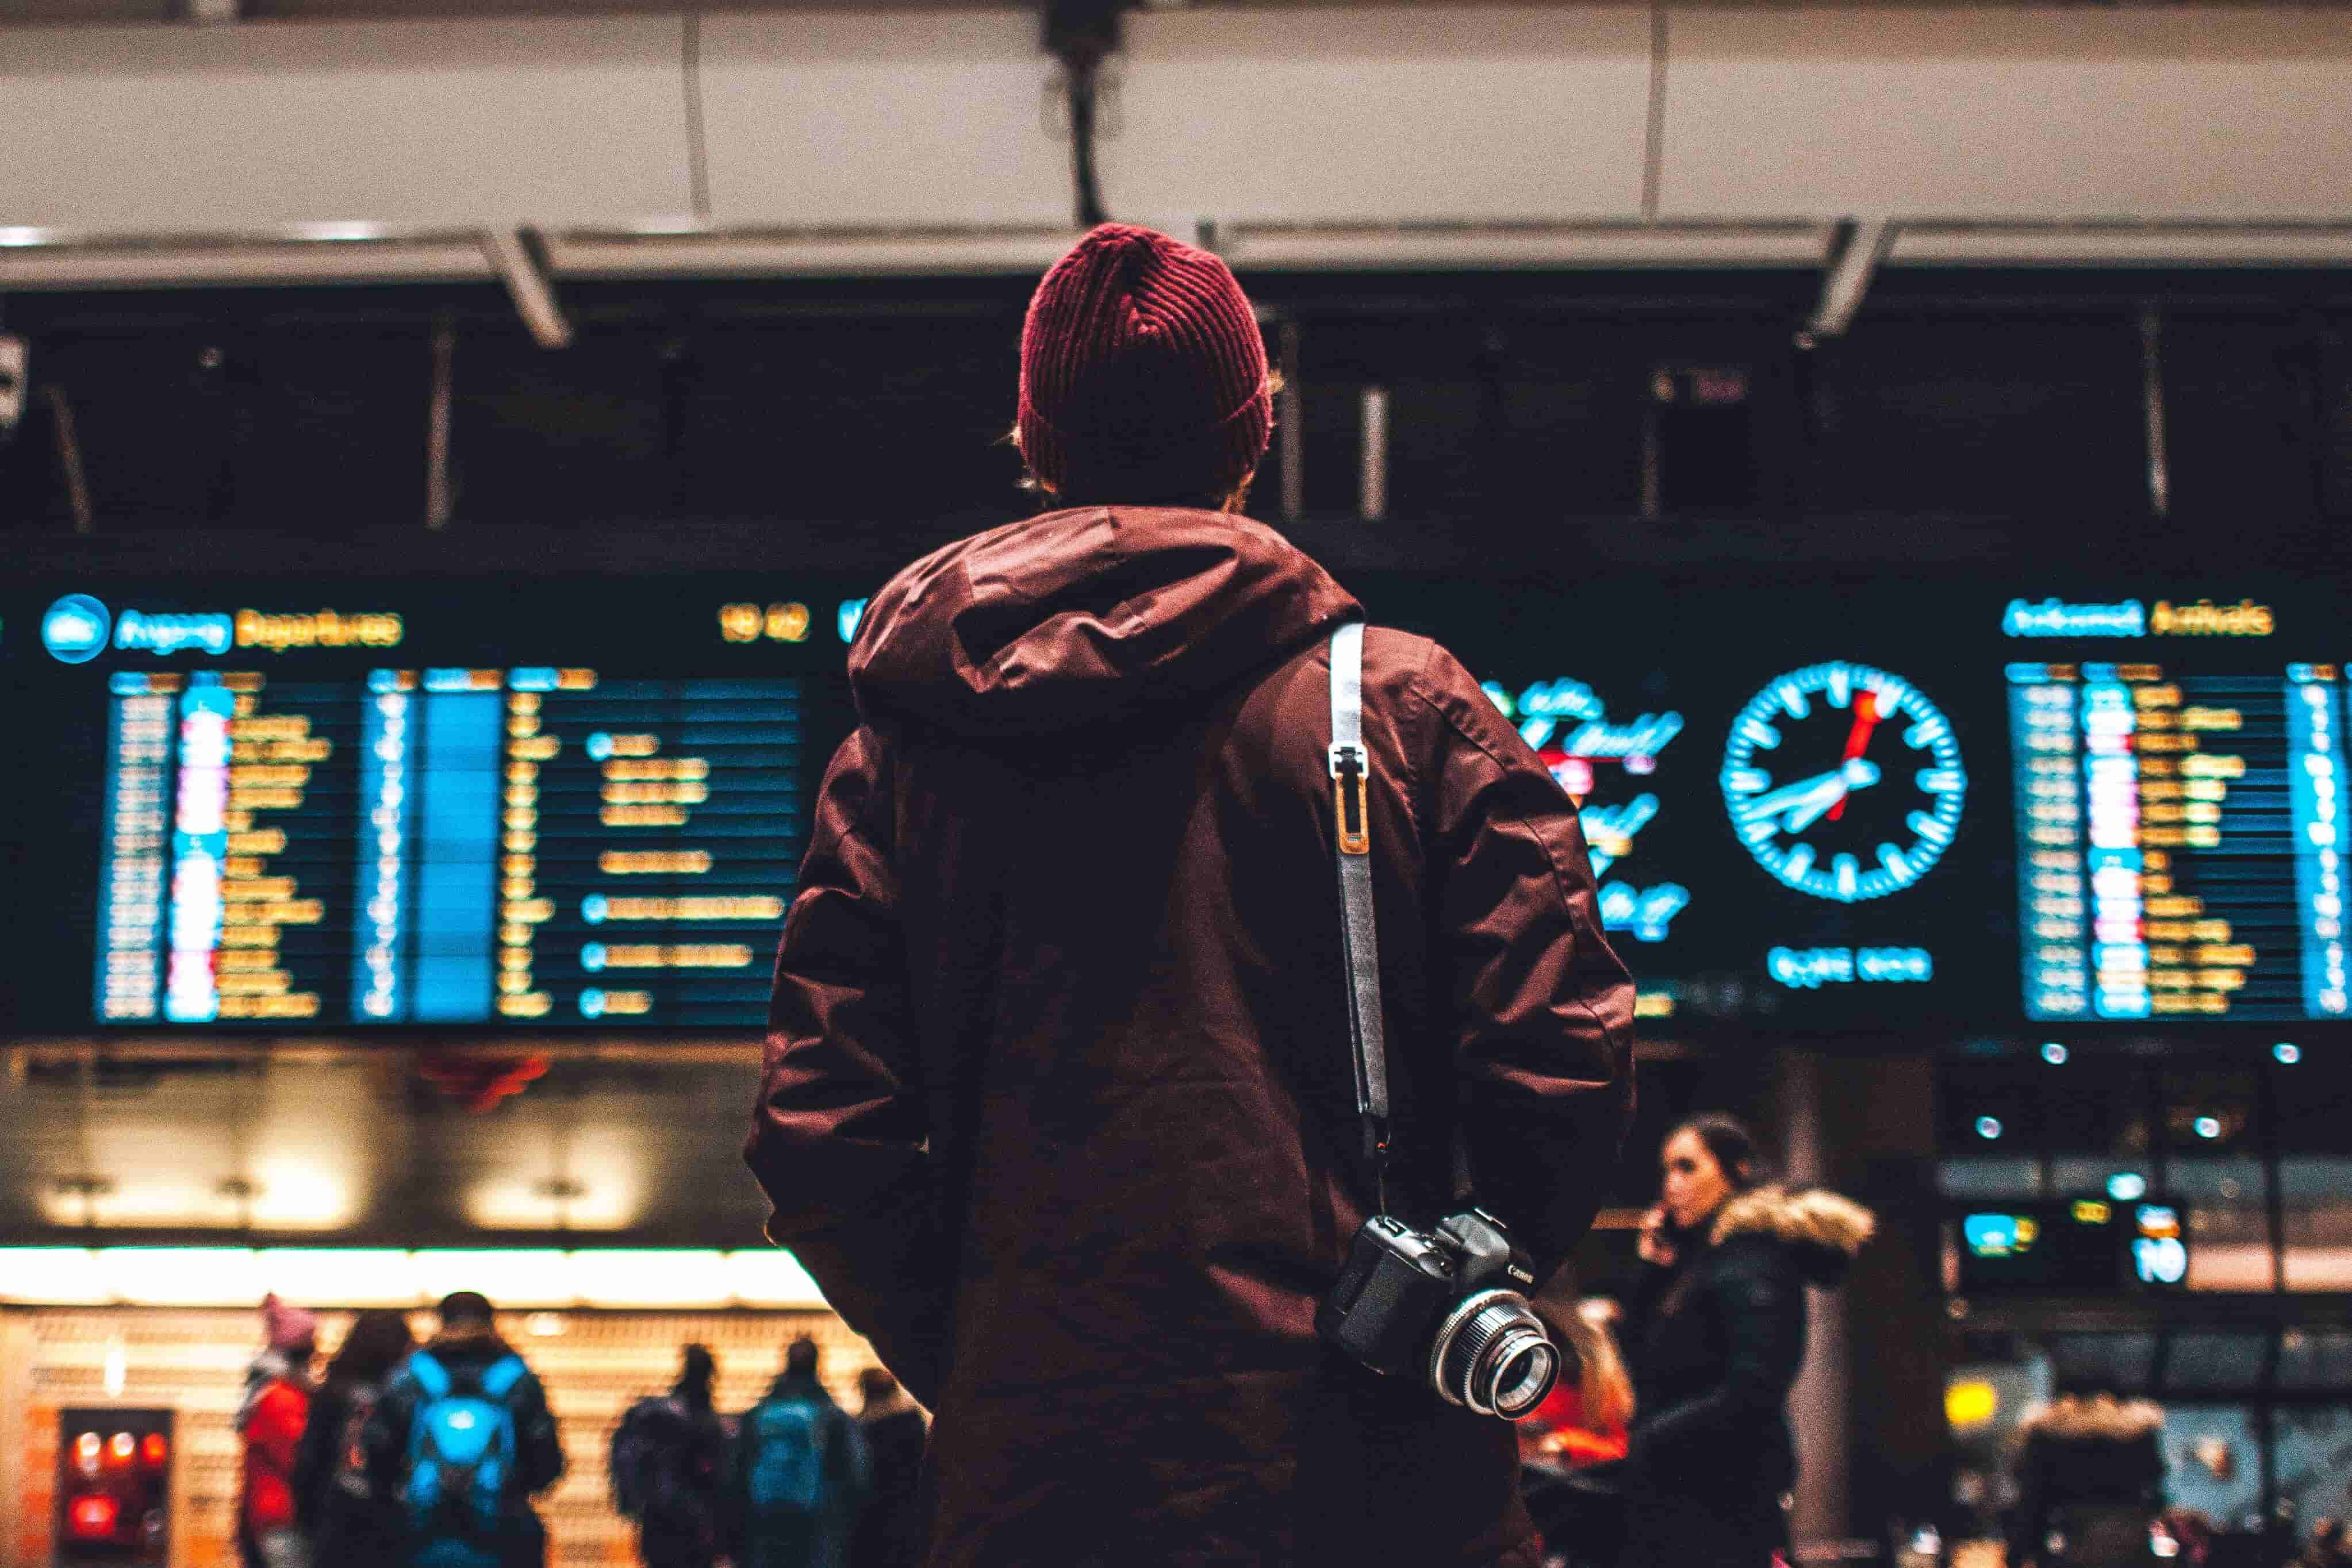 Pittsburgh International Airport Partners with ArtificialIntelligence Startup Zensors to Provide Live Accurate WaitTimes for TSA Lines